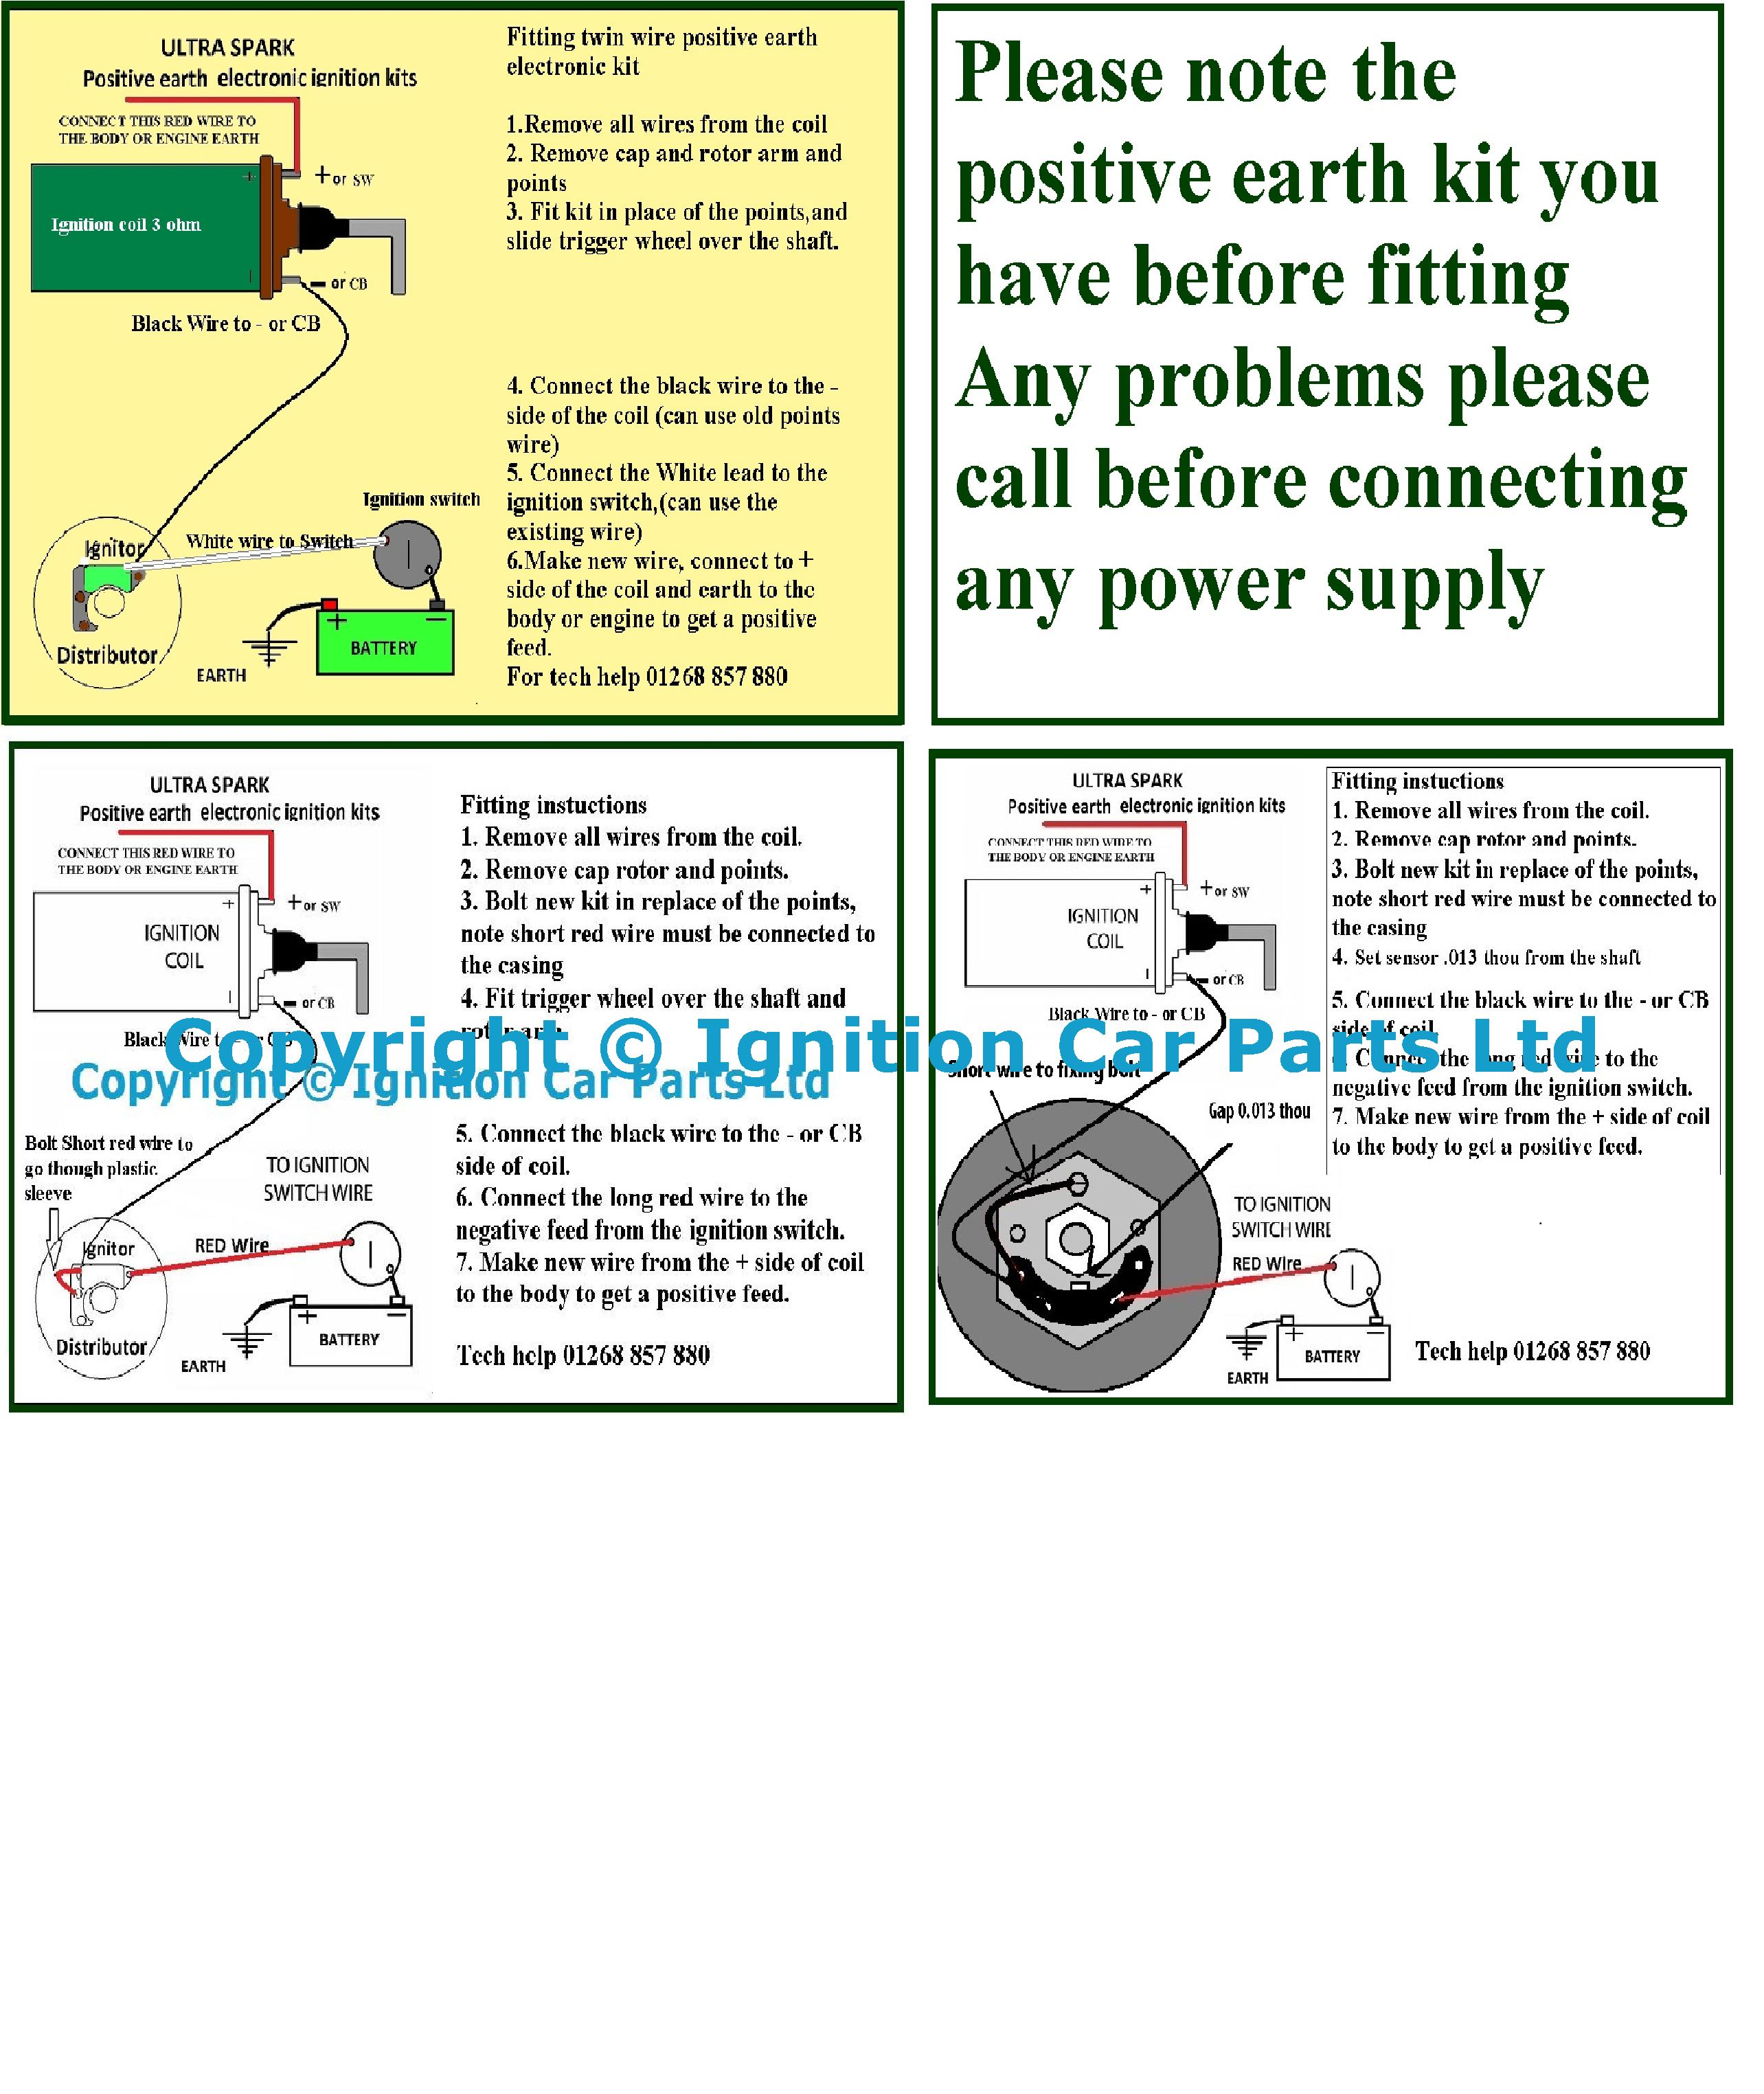 Ignition Problems Help Kreidler Wiring Diagram If You Are Having With Fitting Instructions Of Positive Earth Kits